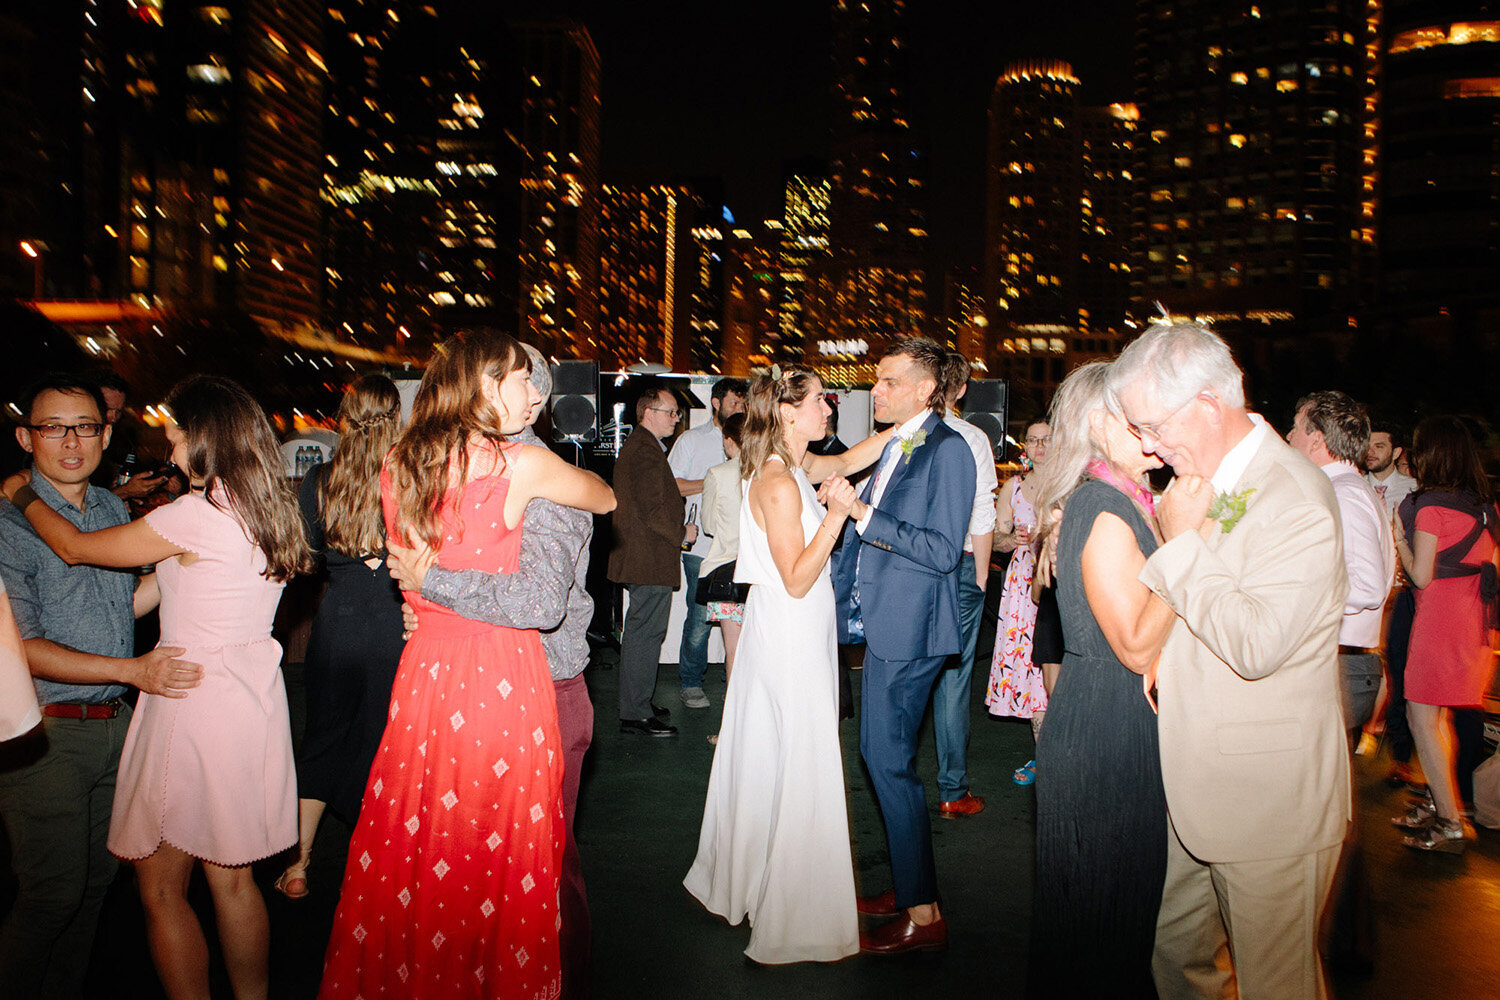 dancing-on-boat-in-downtown-chicago.jpg